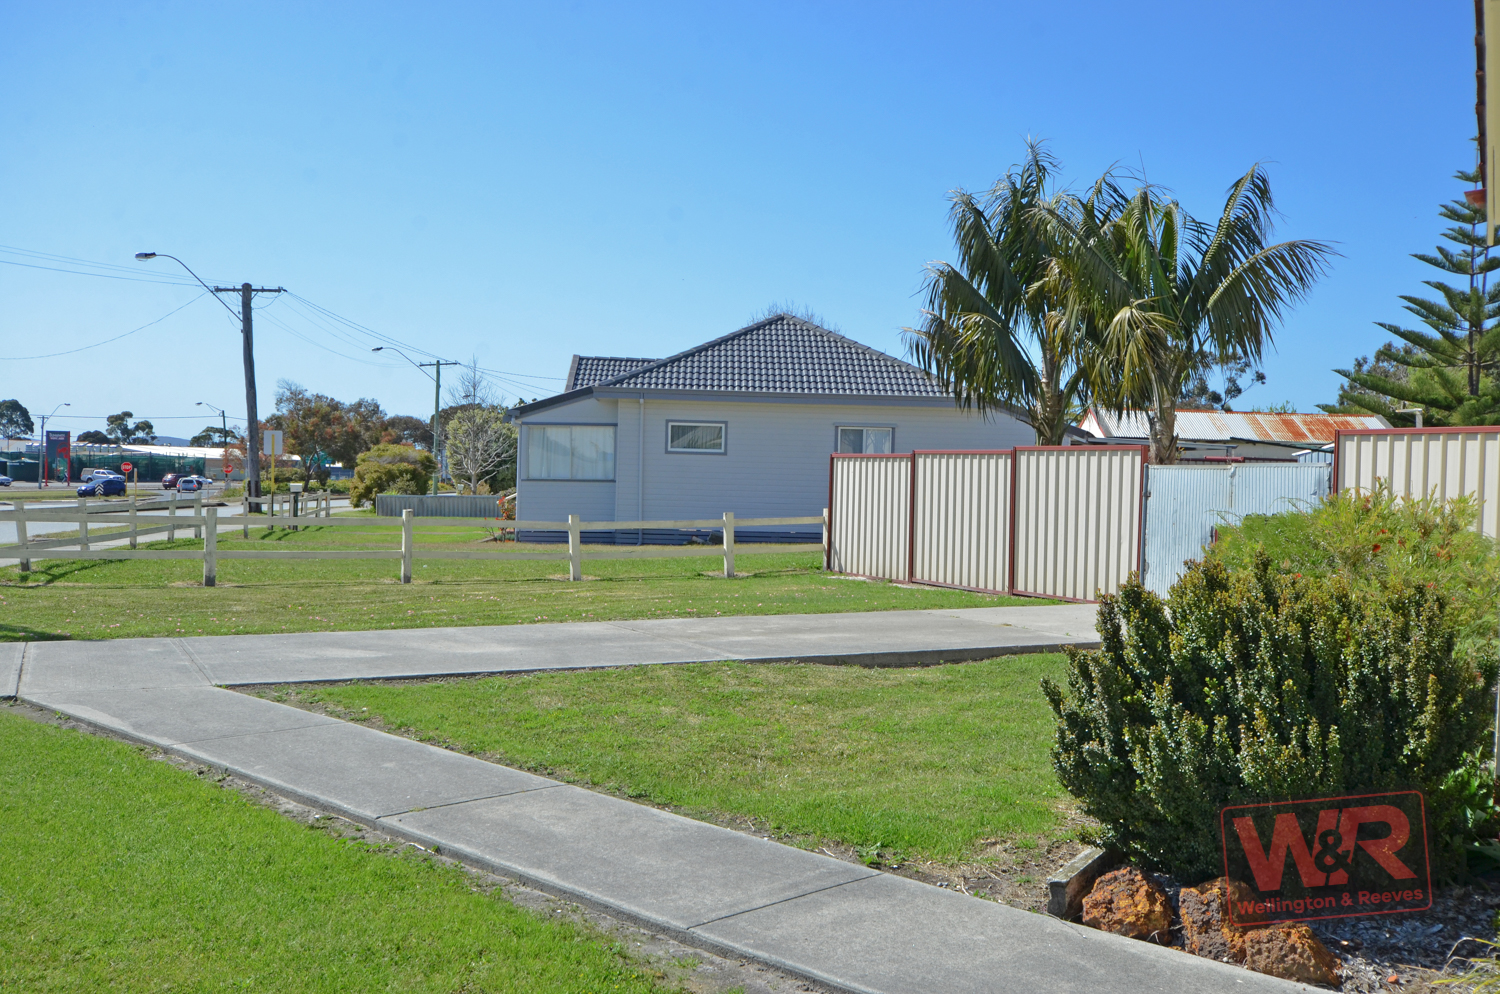 Property Report for 23 South Coast Highway, Lockyer WA 6330